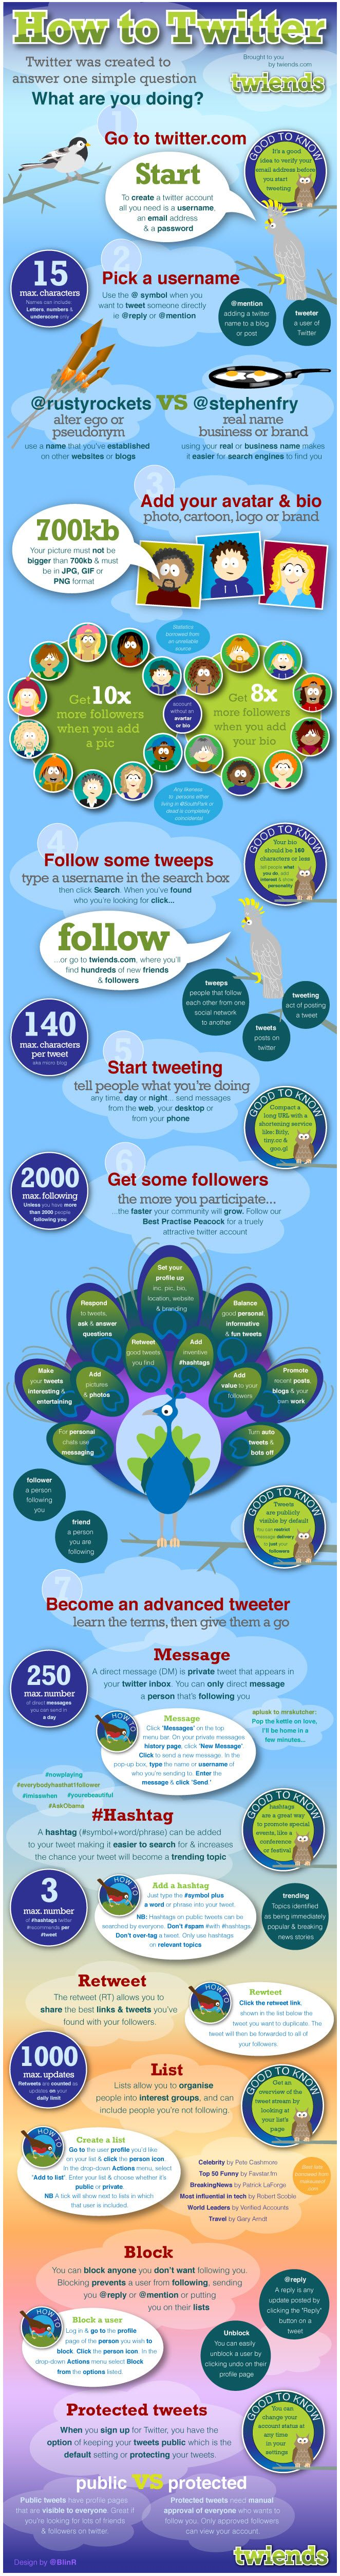 How to Use Twitter Infographic